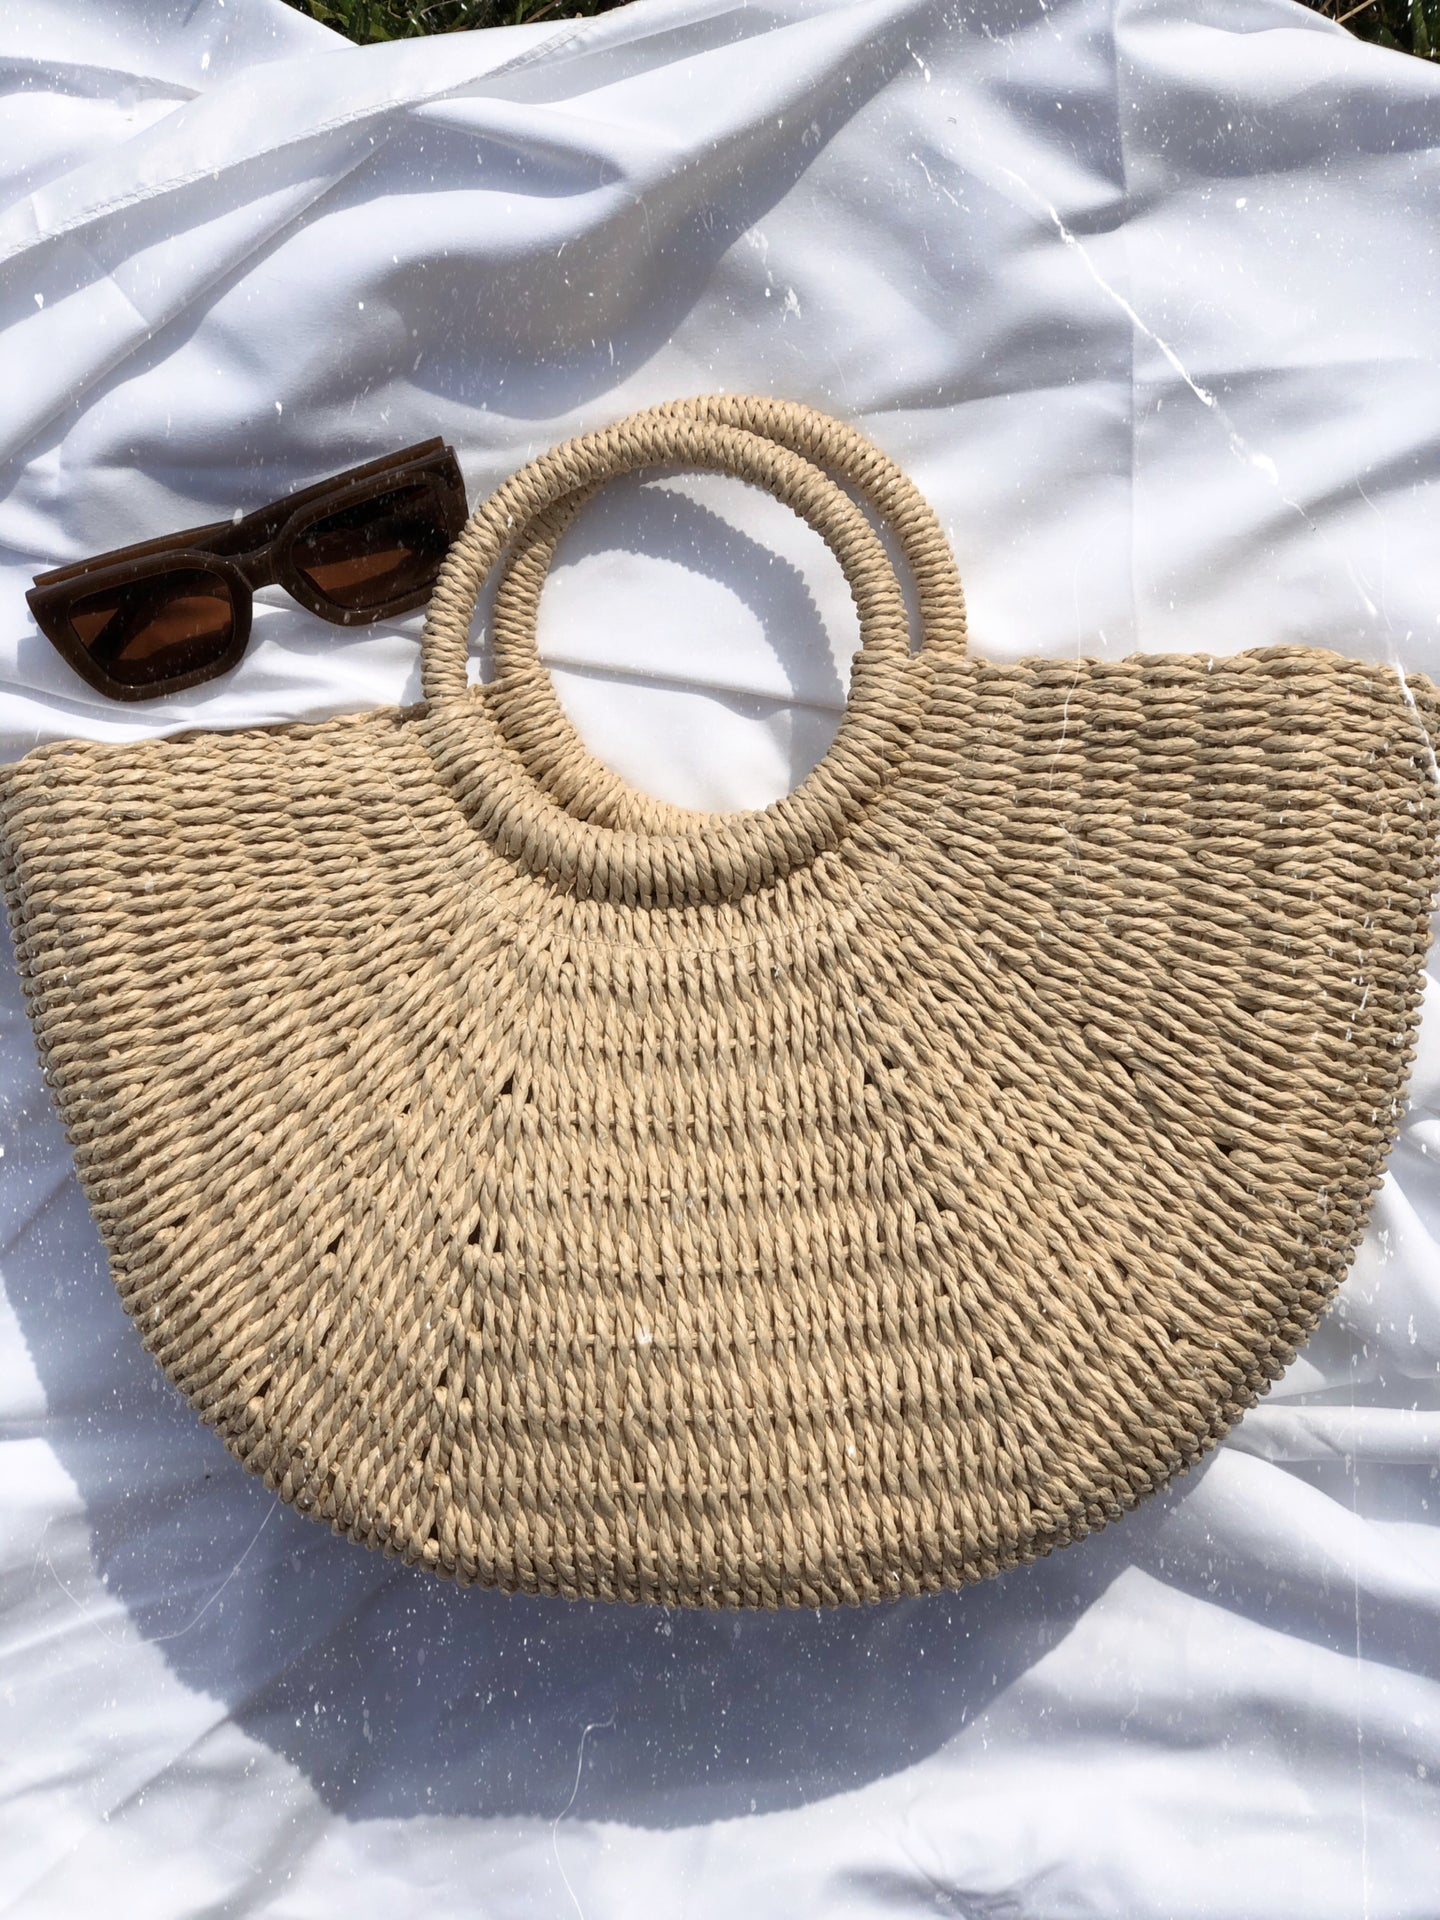 Big Woven Bag - Finding July